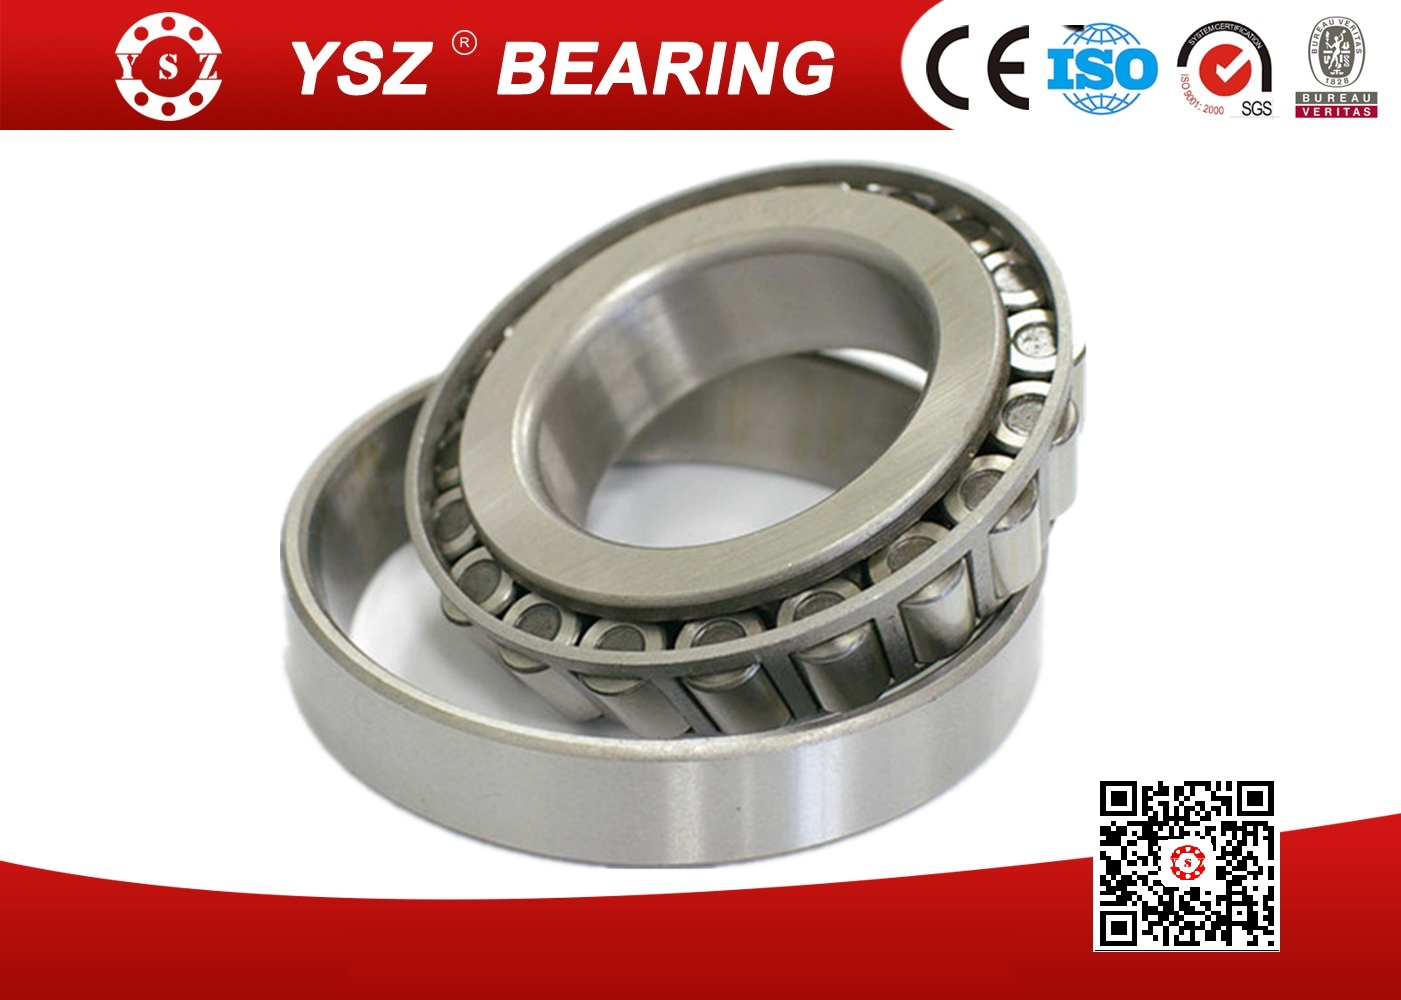 GCr15 Steel Single Row Tapered Roller Bearings For Heavy Truck 32028 140*210*45 mm_3